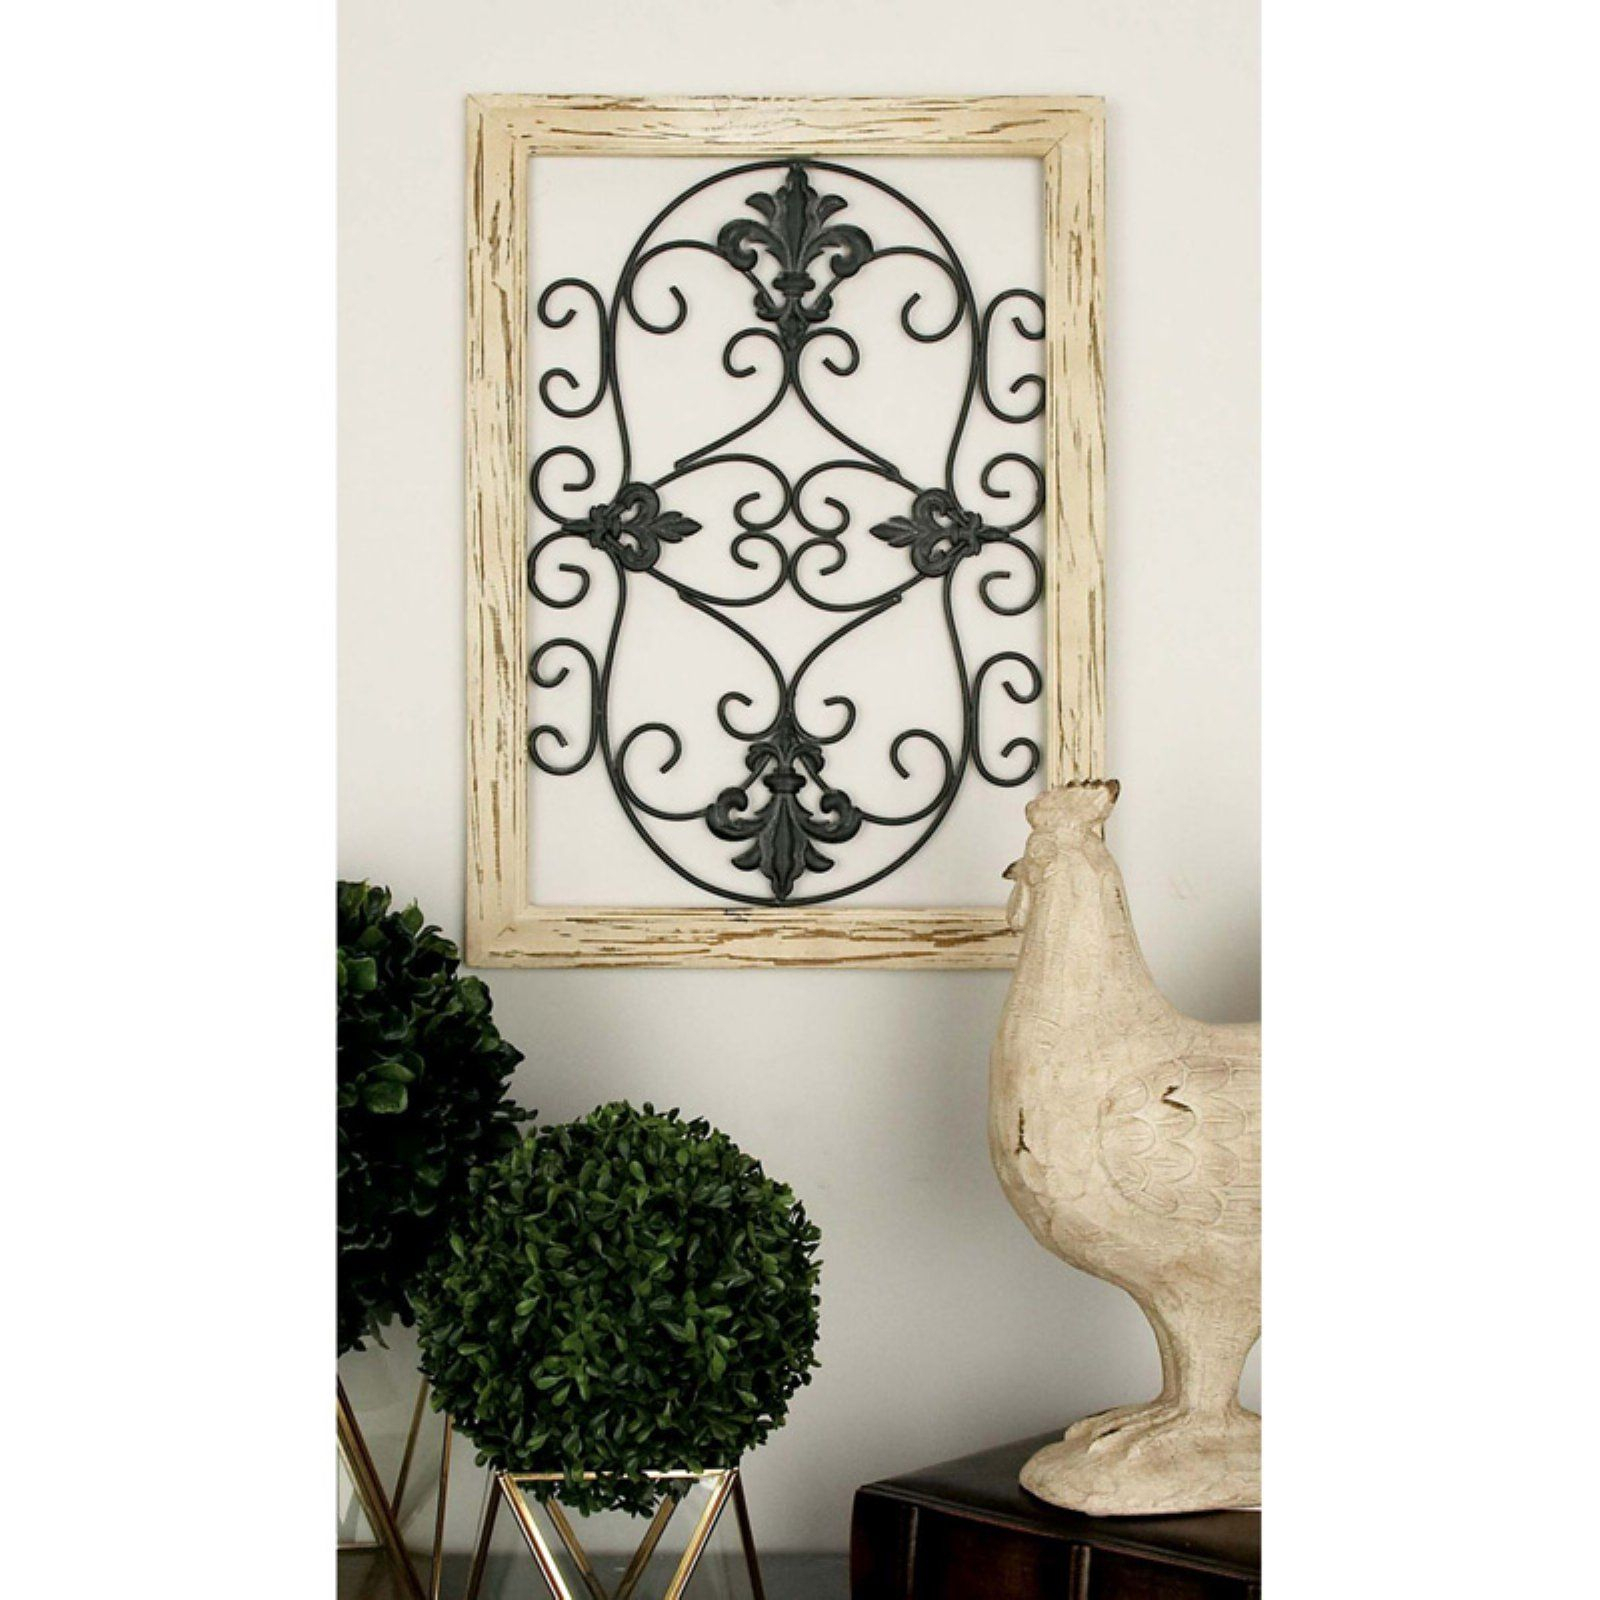 Decmode 32 In. Wooden Wall Panel   Set Of 2 | Products In For 2 Piece Metal Wall Decor Sets By Fleur De Lis Living (Photo 6 of 30)